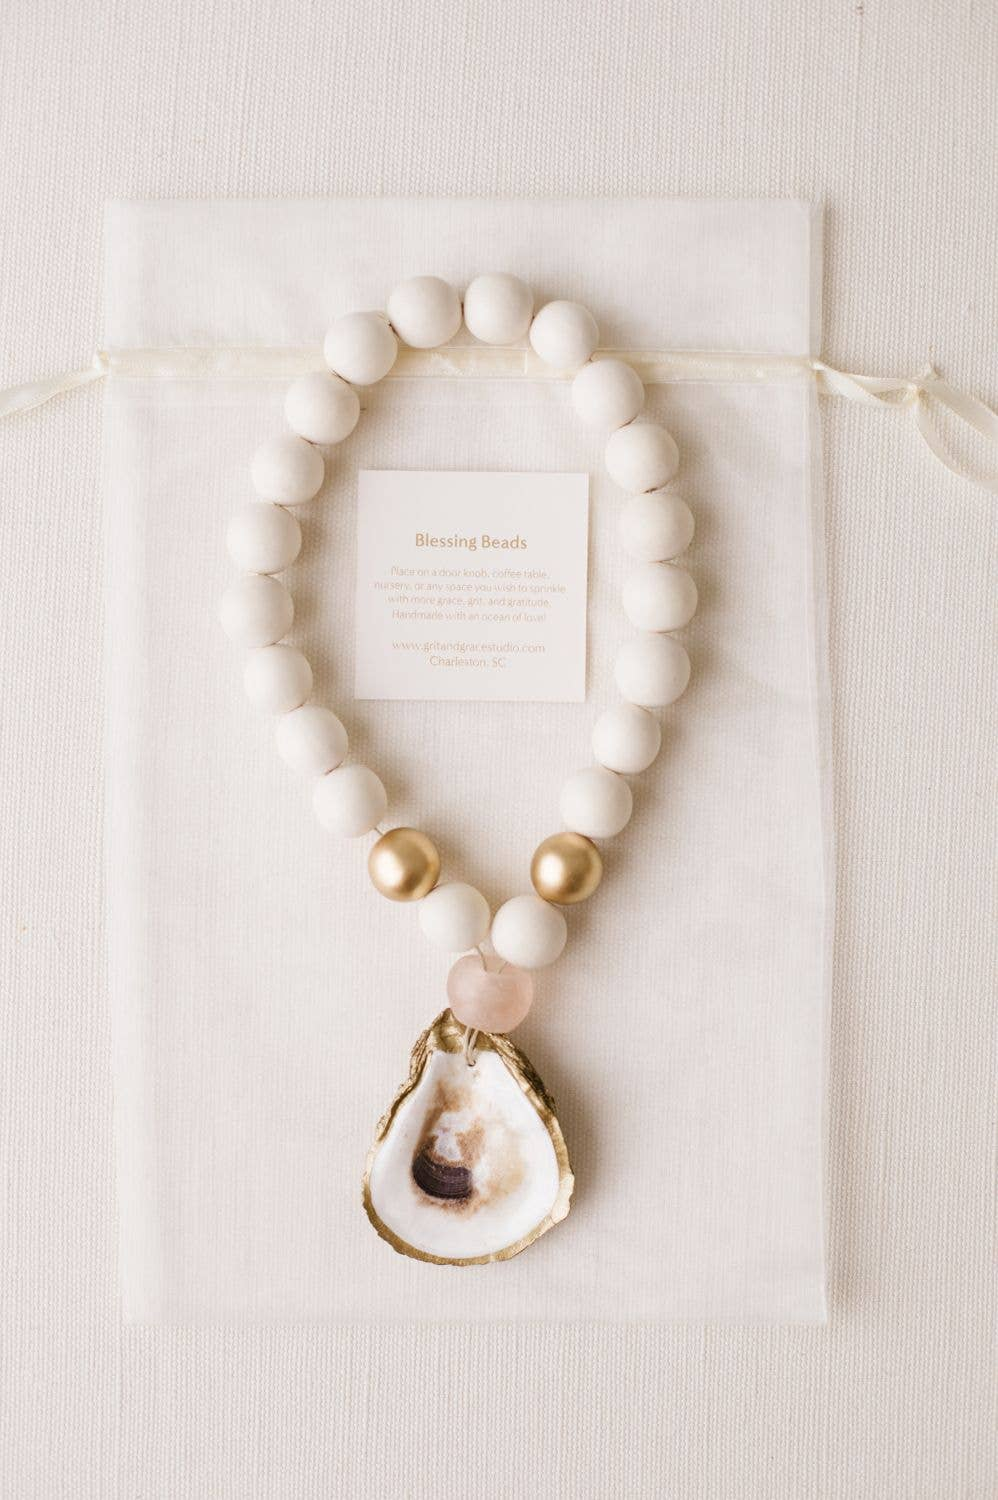 Blessing Beads; Gifts for Her; Wedding Favors; Oyster Craft